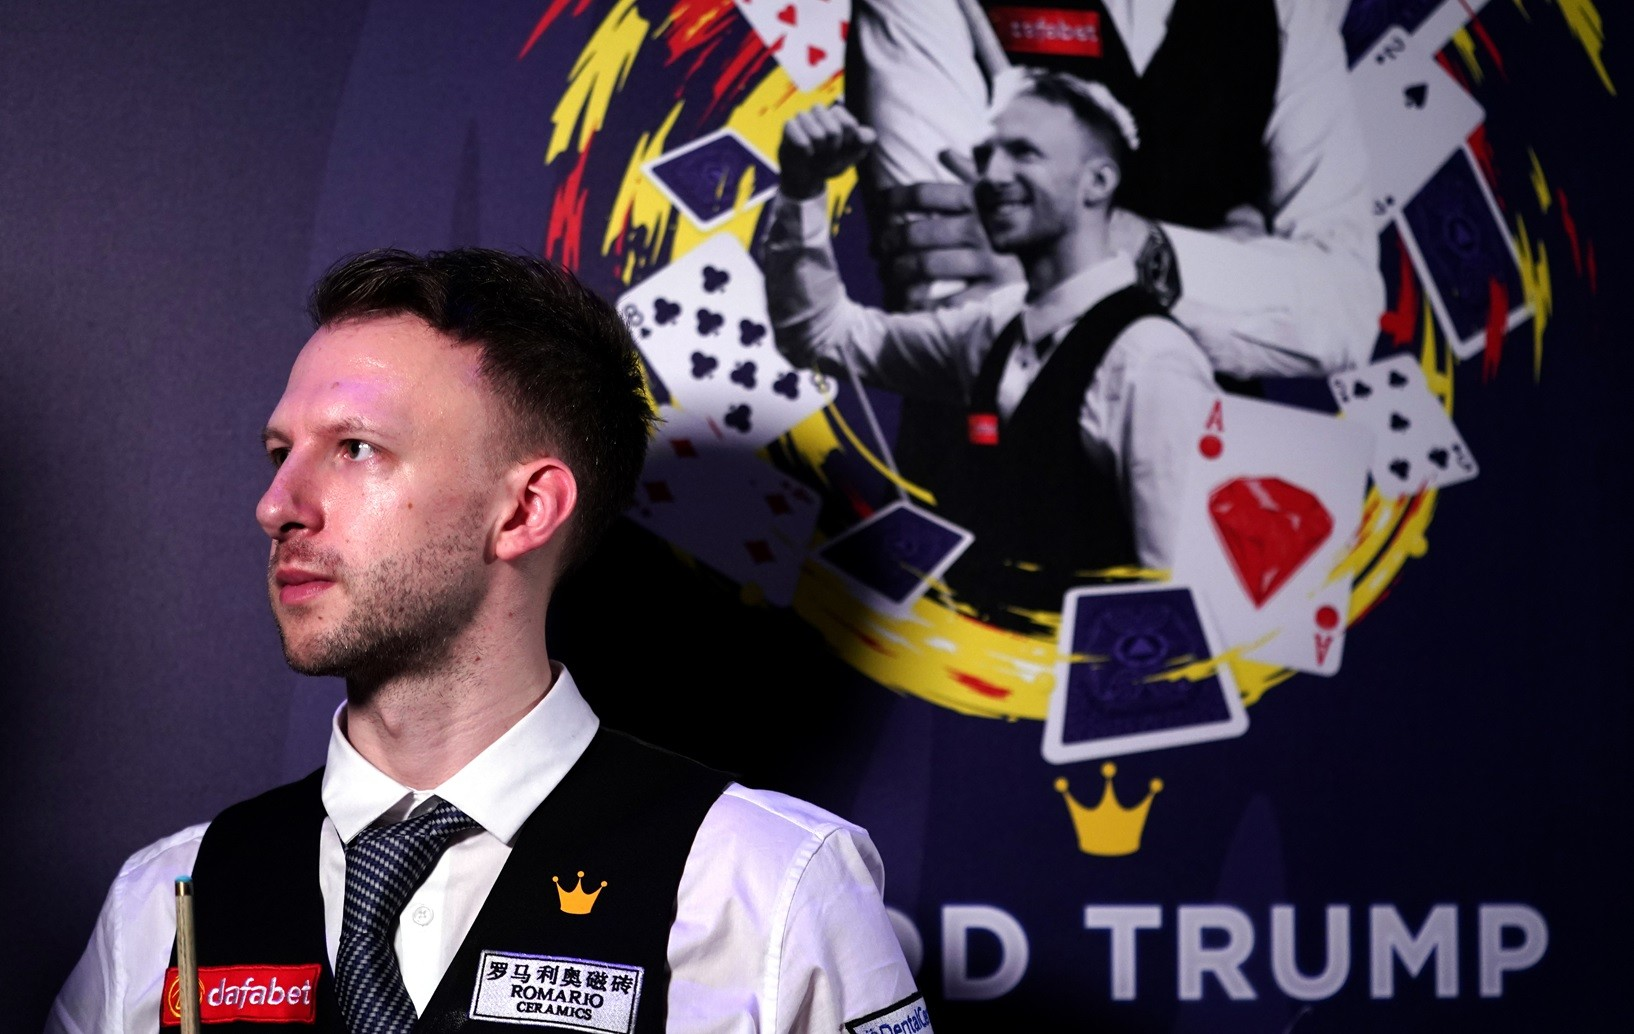 German Masters Qualifiers 2022 | Day Four Preview and Order of Play